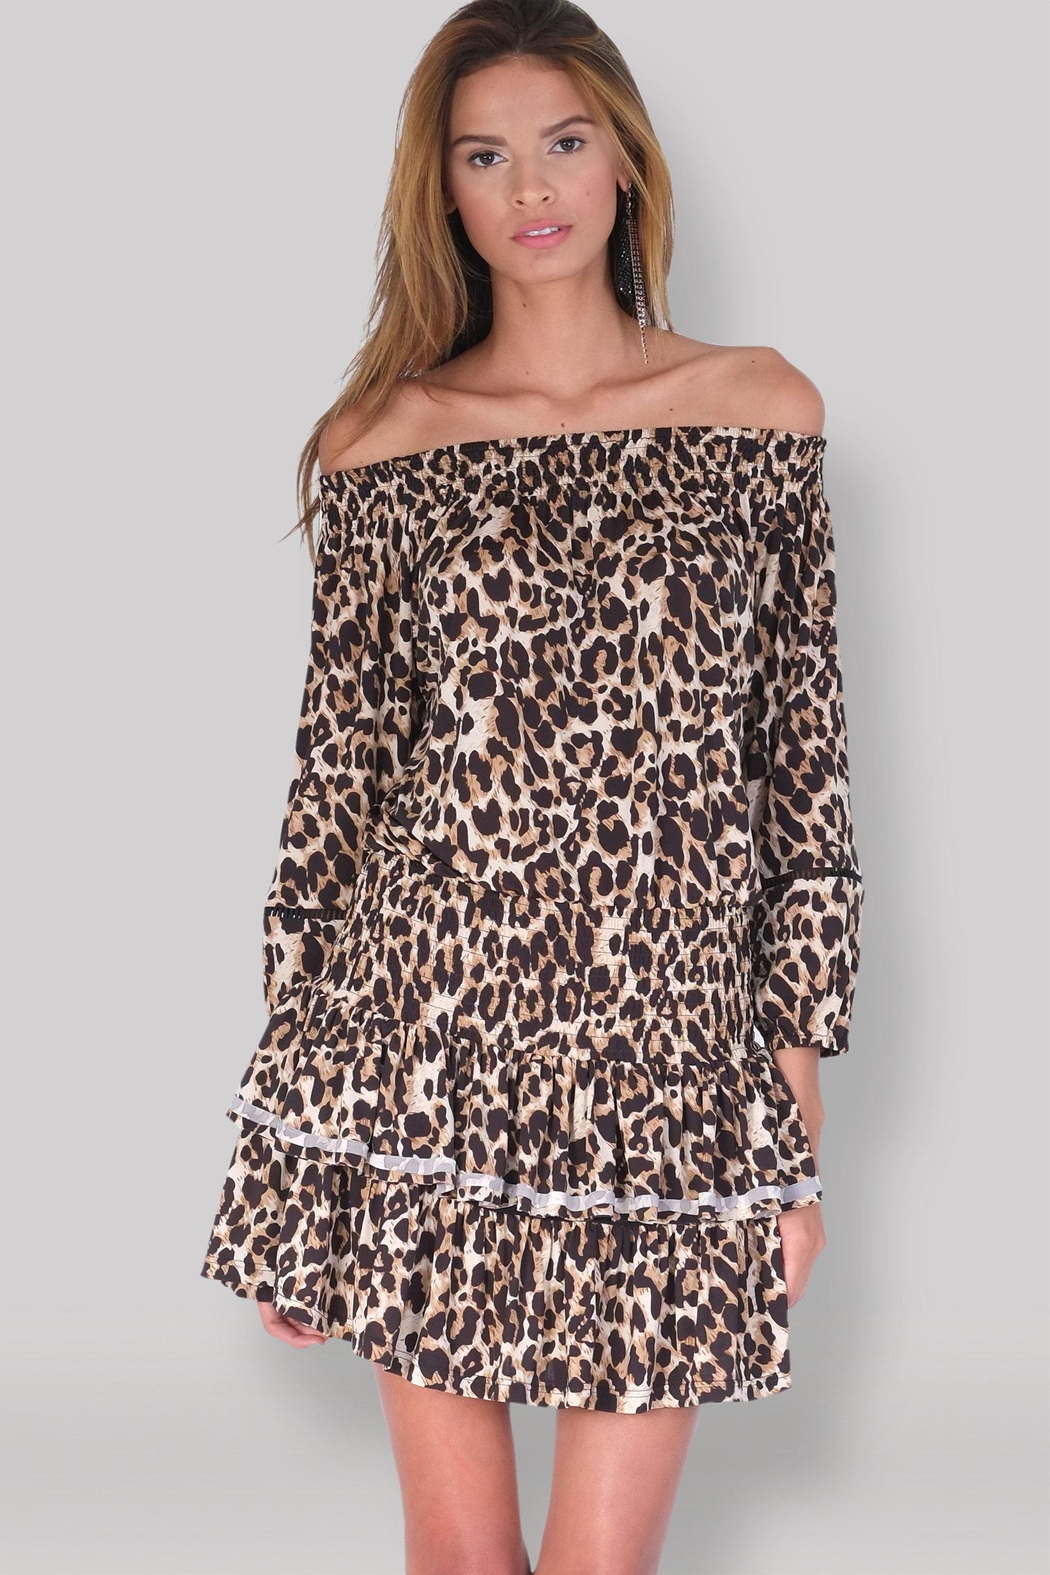 Muche et Muchette Ellyn Dress - Leopard - Main Image